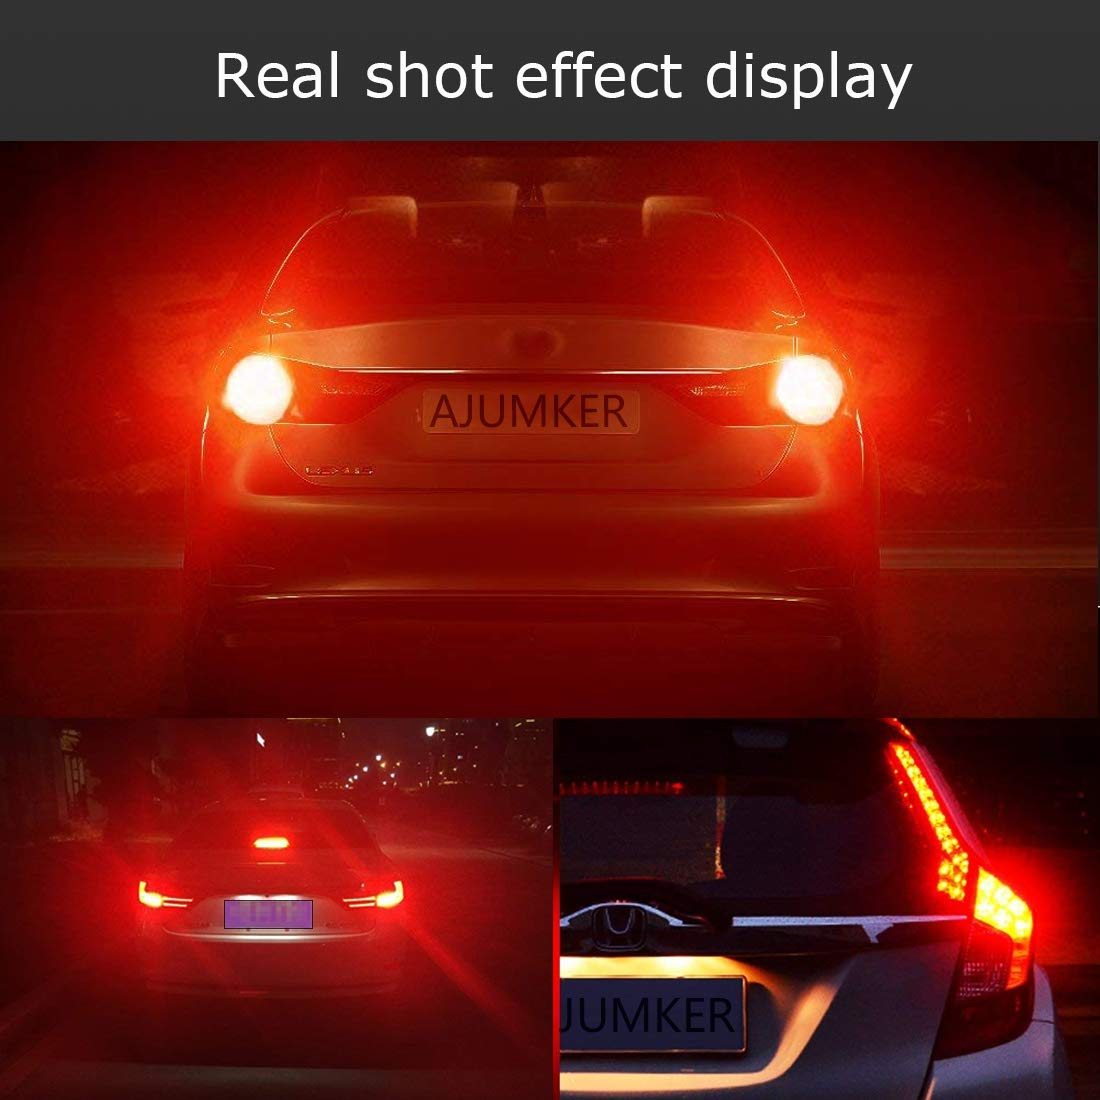 AJUMKER PY21W LED Bulb BAU15S Turn Signal Bulb 7507 2641A Extremely Bright 21 SMD 12-24V High Power Chipsets with Projector Lens Backup Brake Lights Tail Lights Blinkers Red 2-Pack